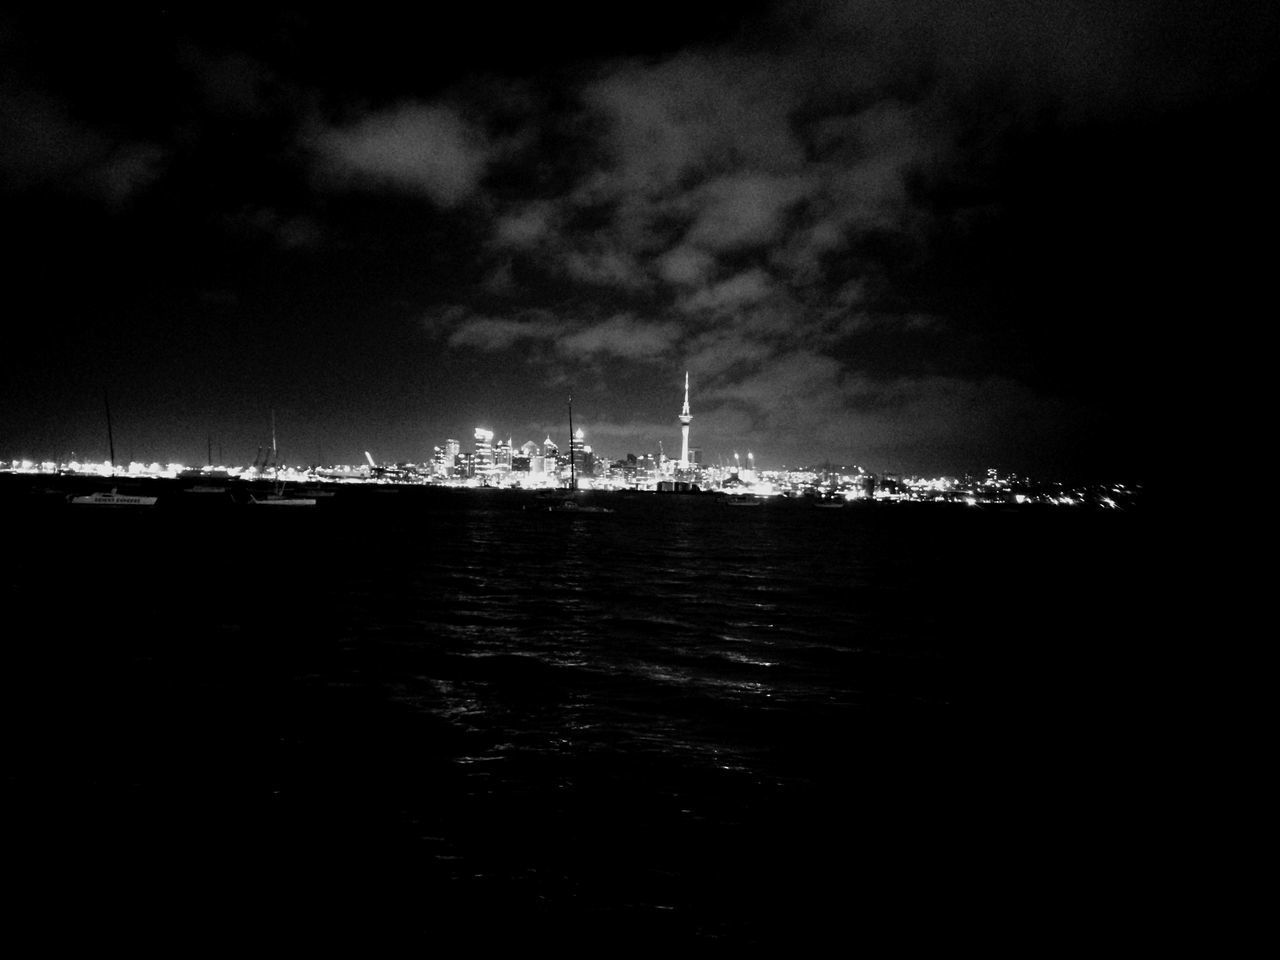 VIEW OF ILLUMINATED CITY BY SEA AGAINST SKY